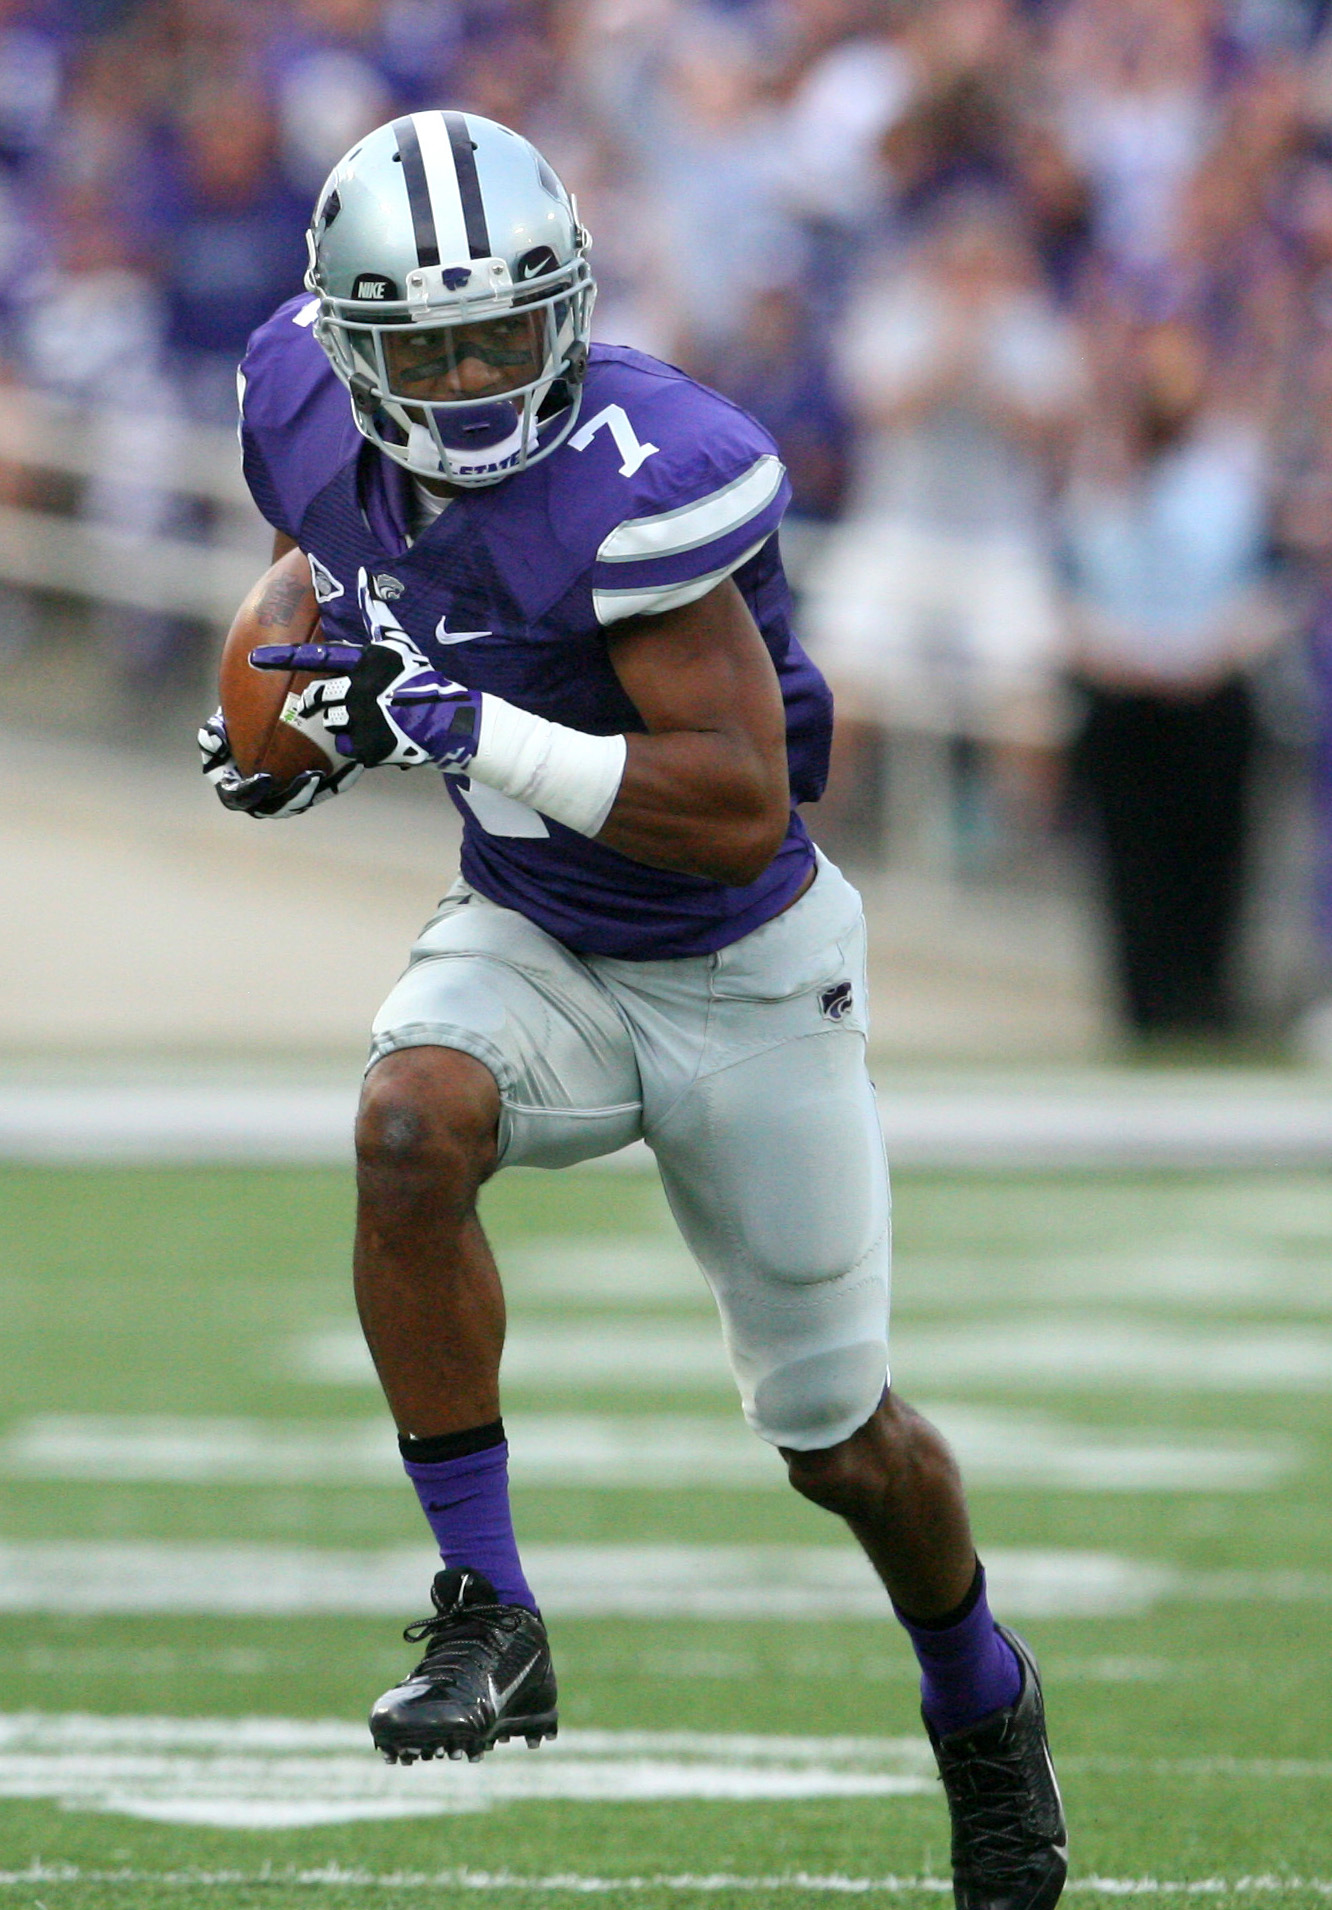 Kip Daily was the last K-State defensive back to wear No. 7. Now it will be inherited by Hunter Knoblauch.